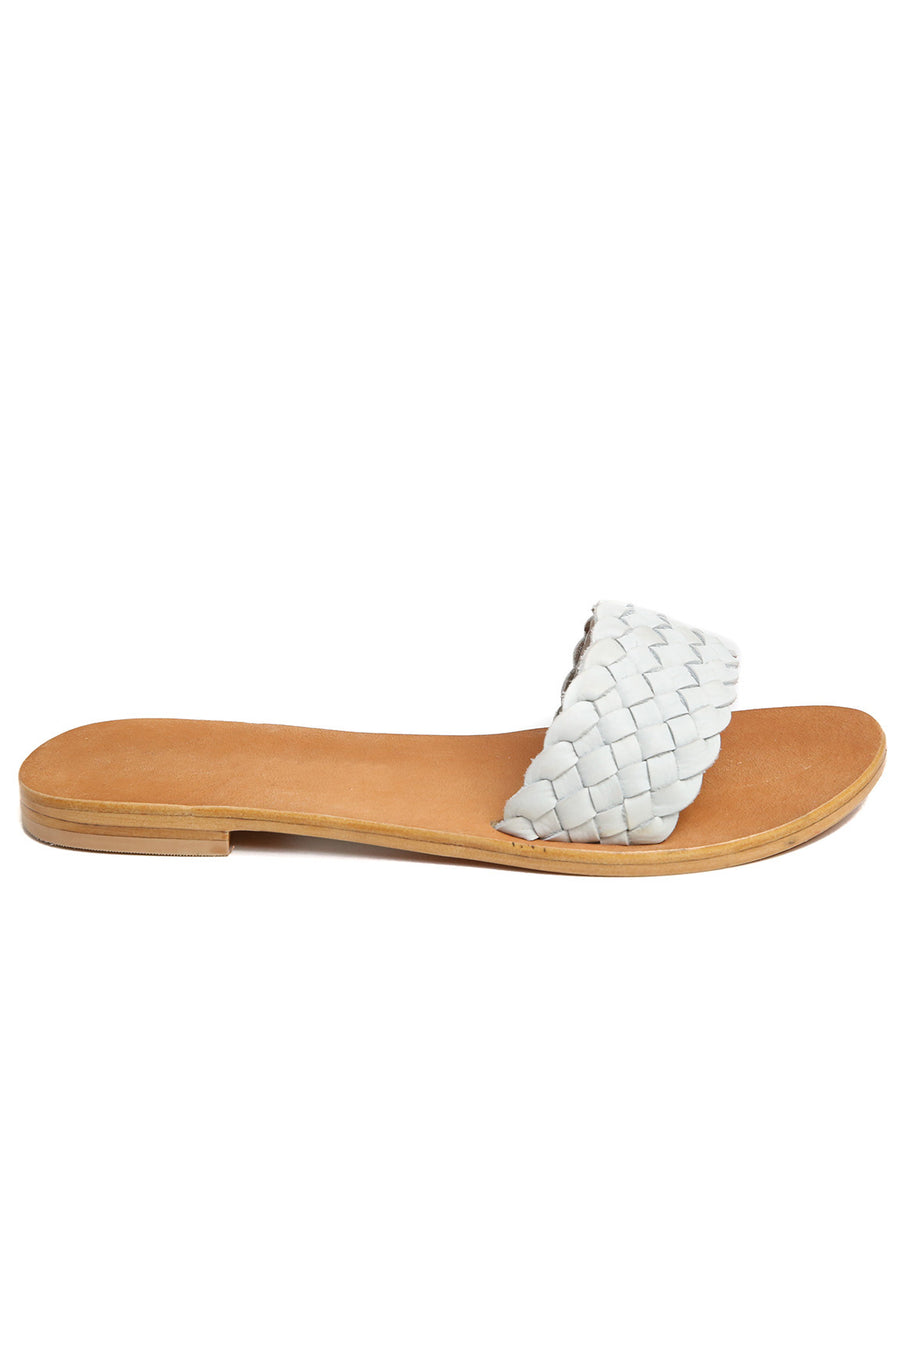 Malibu White Braided Leather Slide Sandal Front